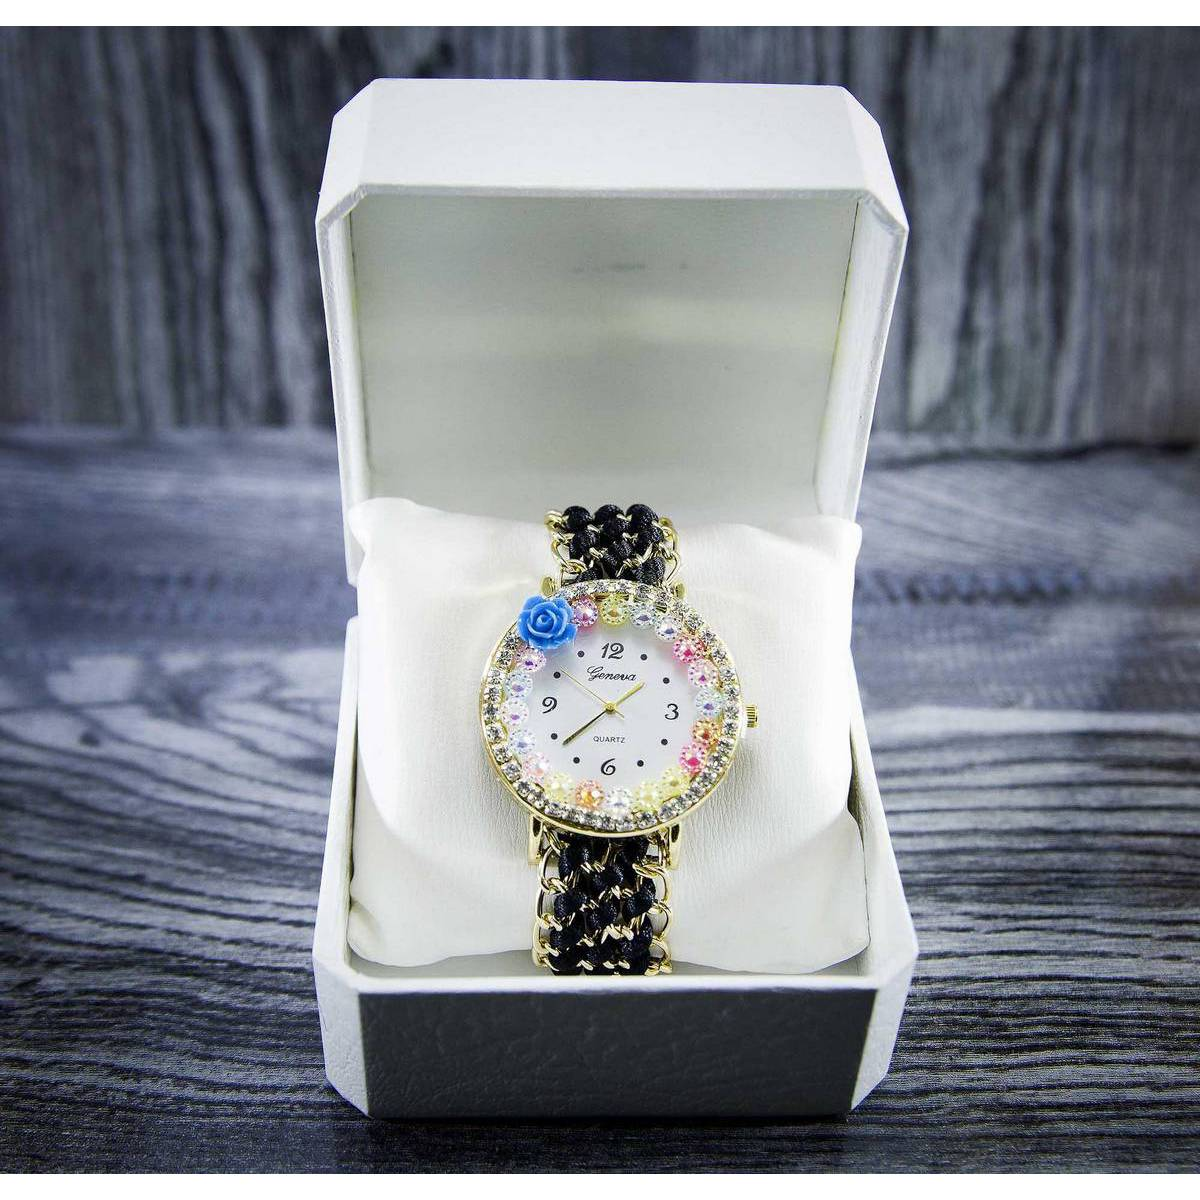 Black Floral Bracelet Watches For Girls With Gift box